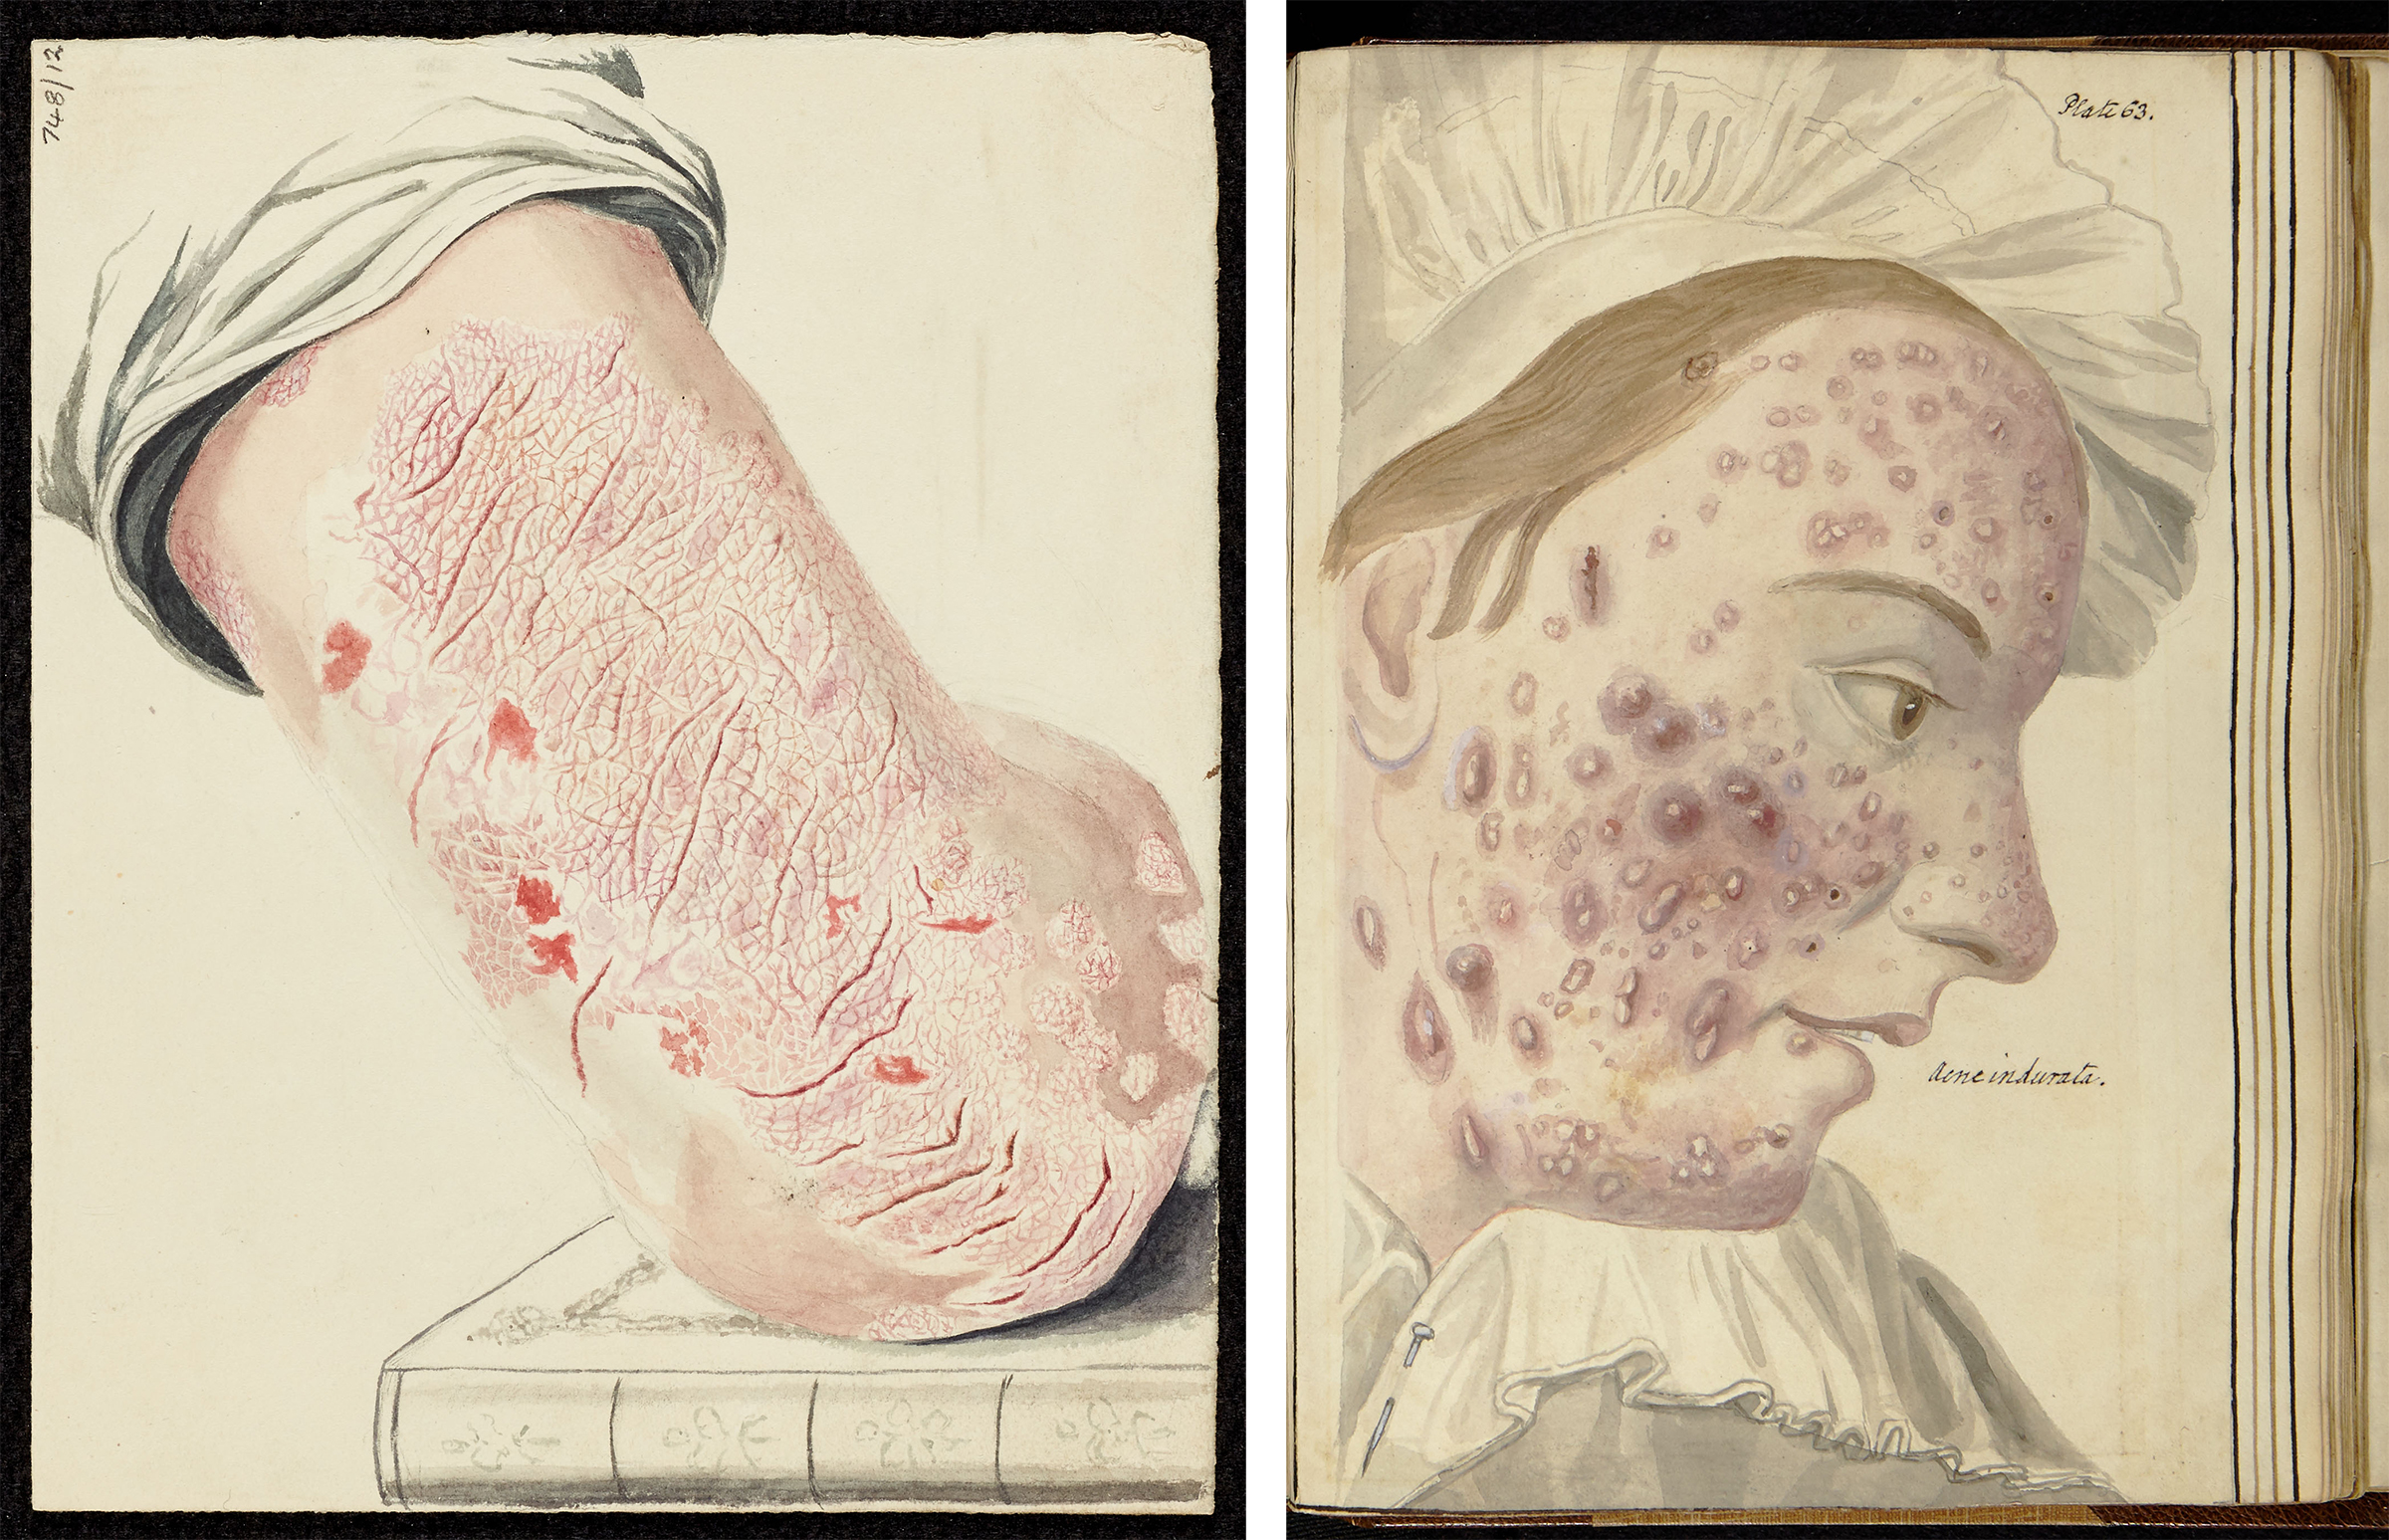 Colour drawing of psoriasis on the back of the upper arm. Colour watercolour drawing of severe acne on a woman's face. The woman is wearing a white bonnet.